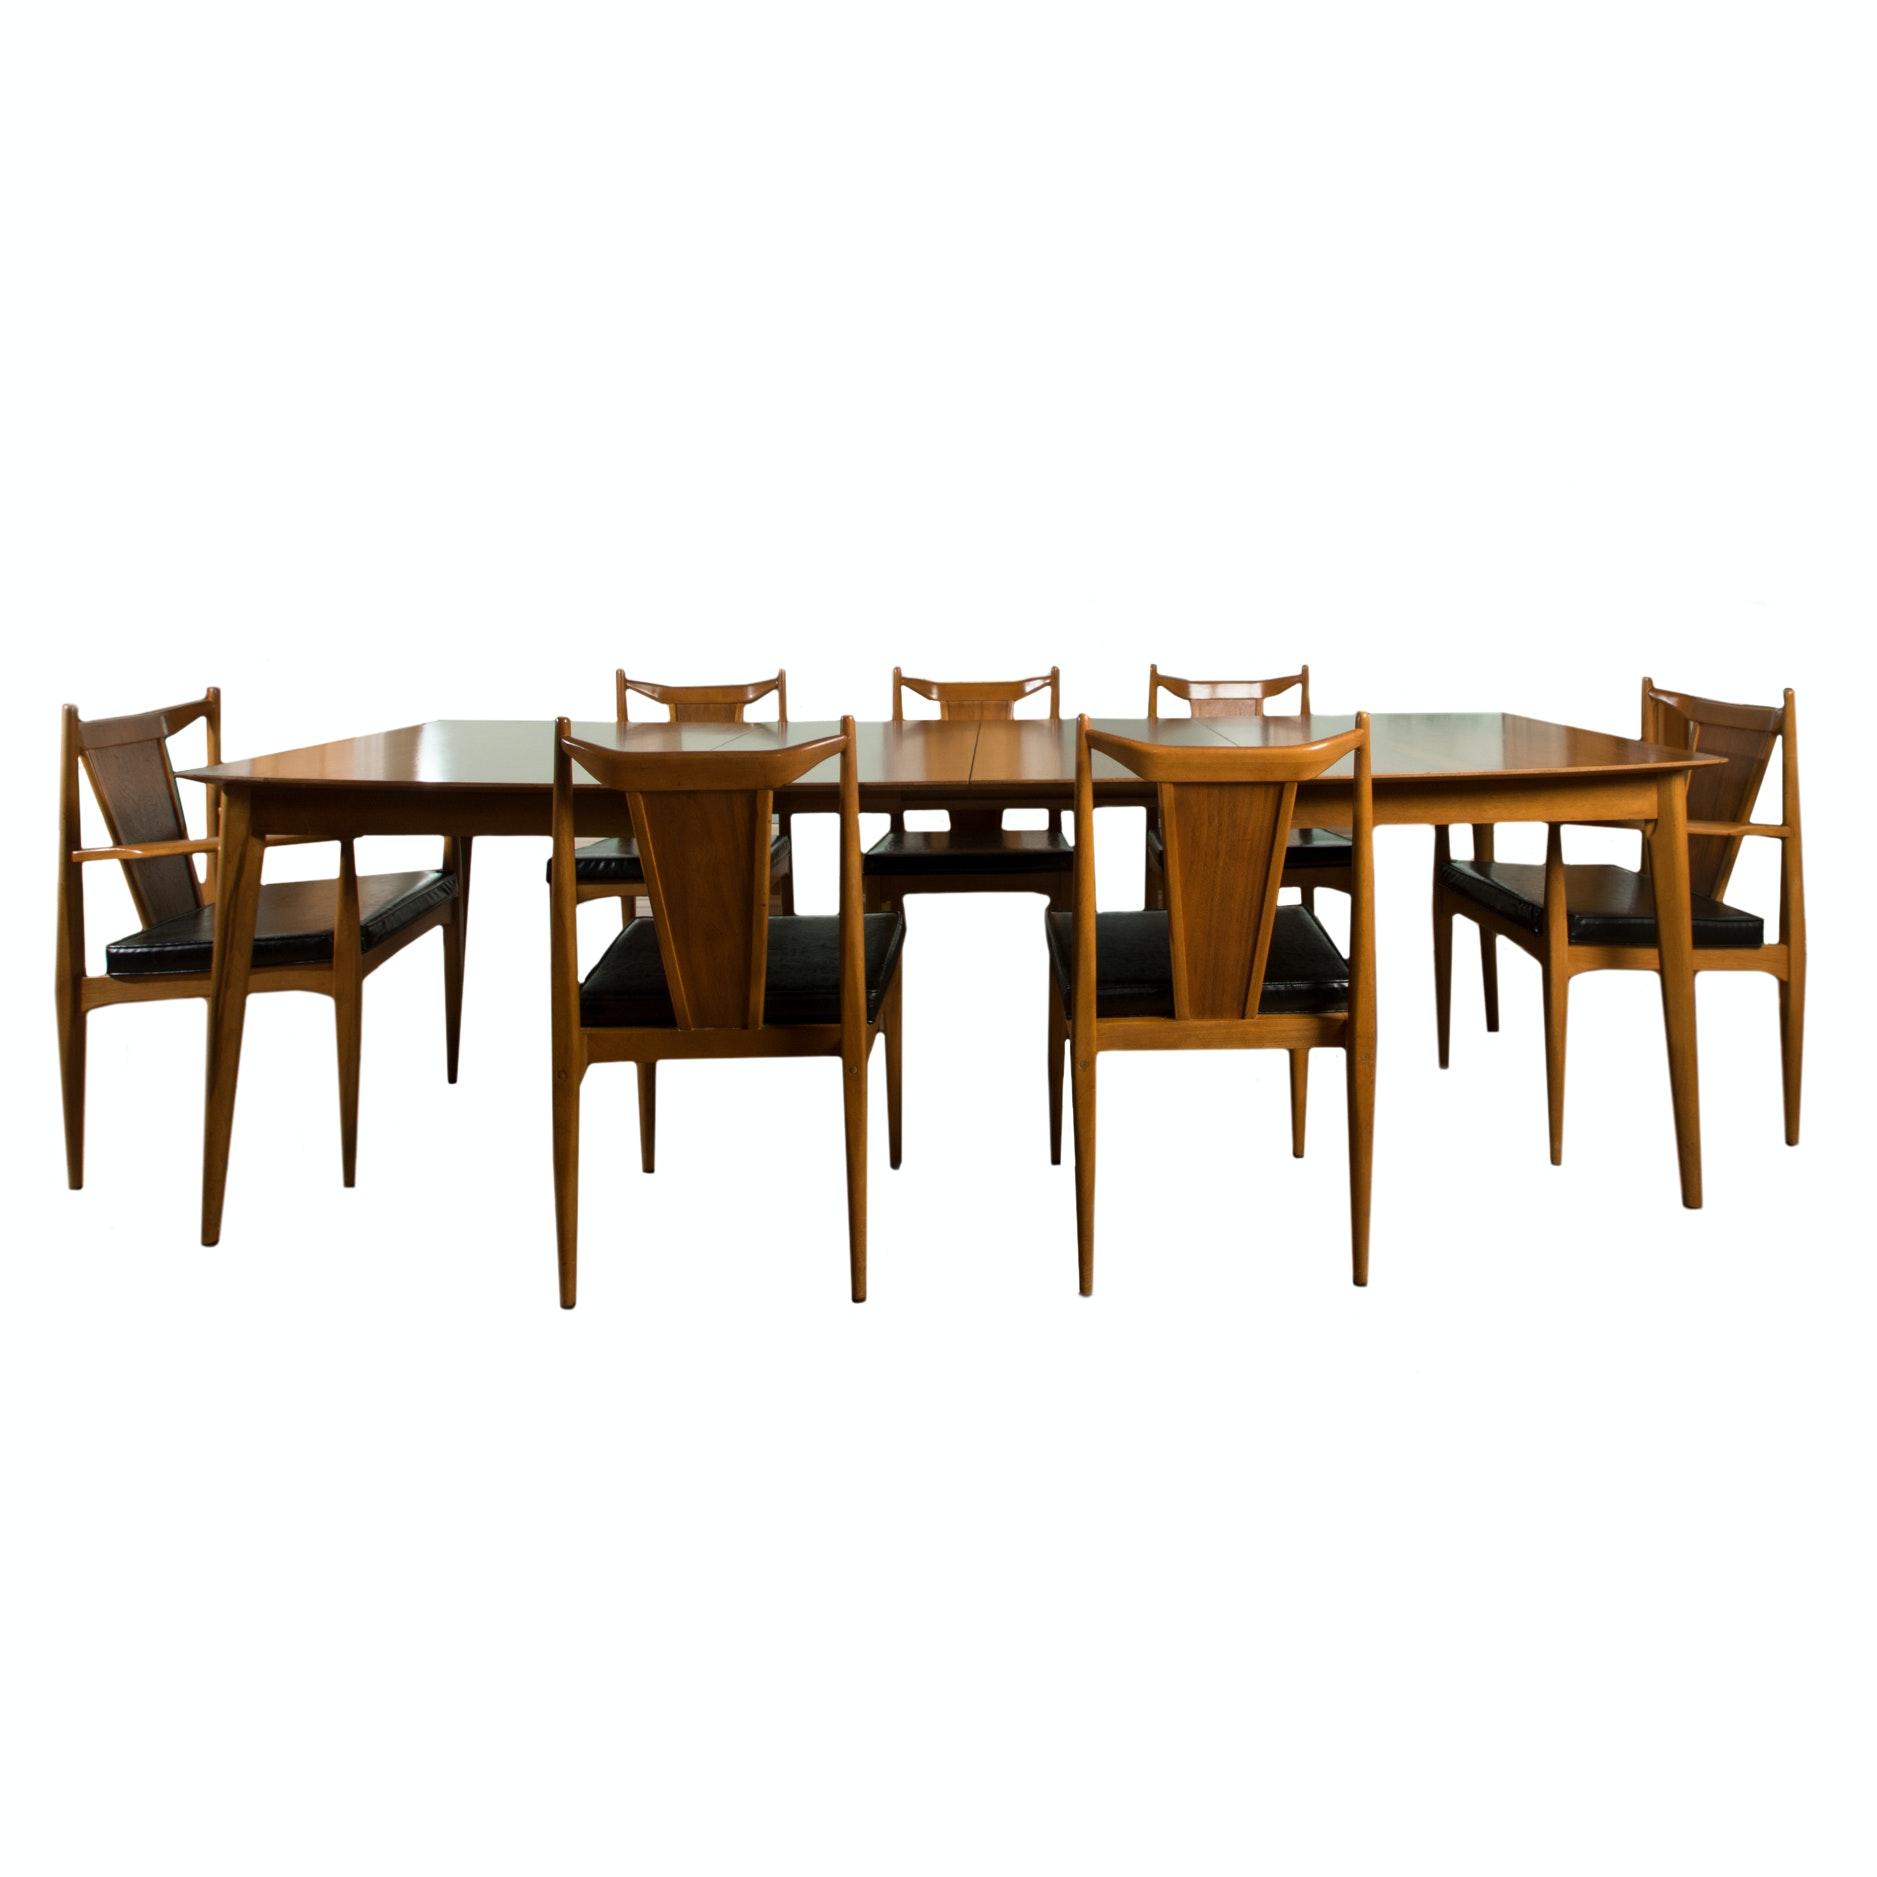 Danish Modern Dining Table with Unagusta Chairs